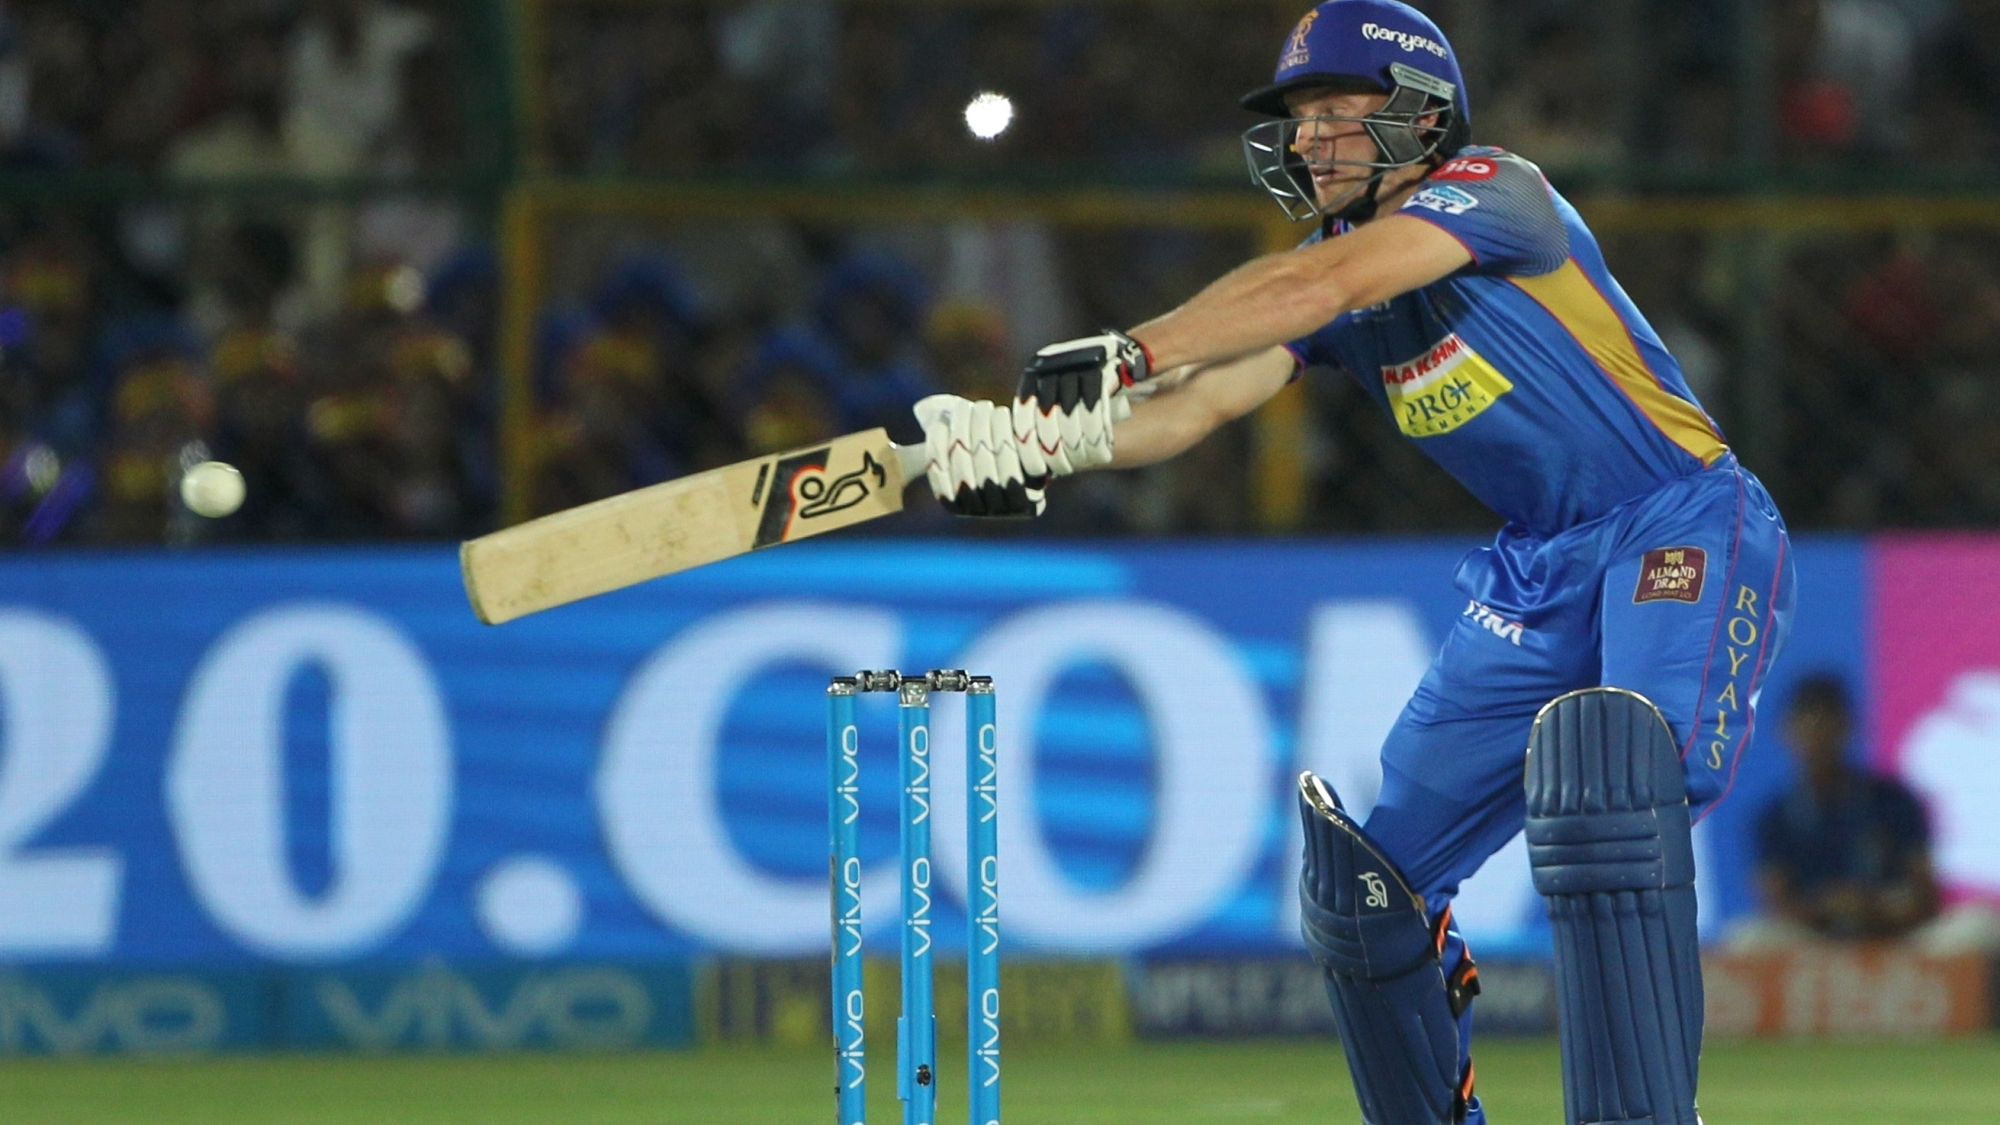 IPL 2018: Twitterverse laud Jos Buttler's fifth consecutive IPL fifty that helped RR beat Mumbai by 7 wickets